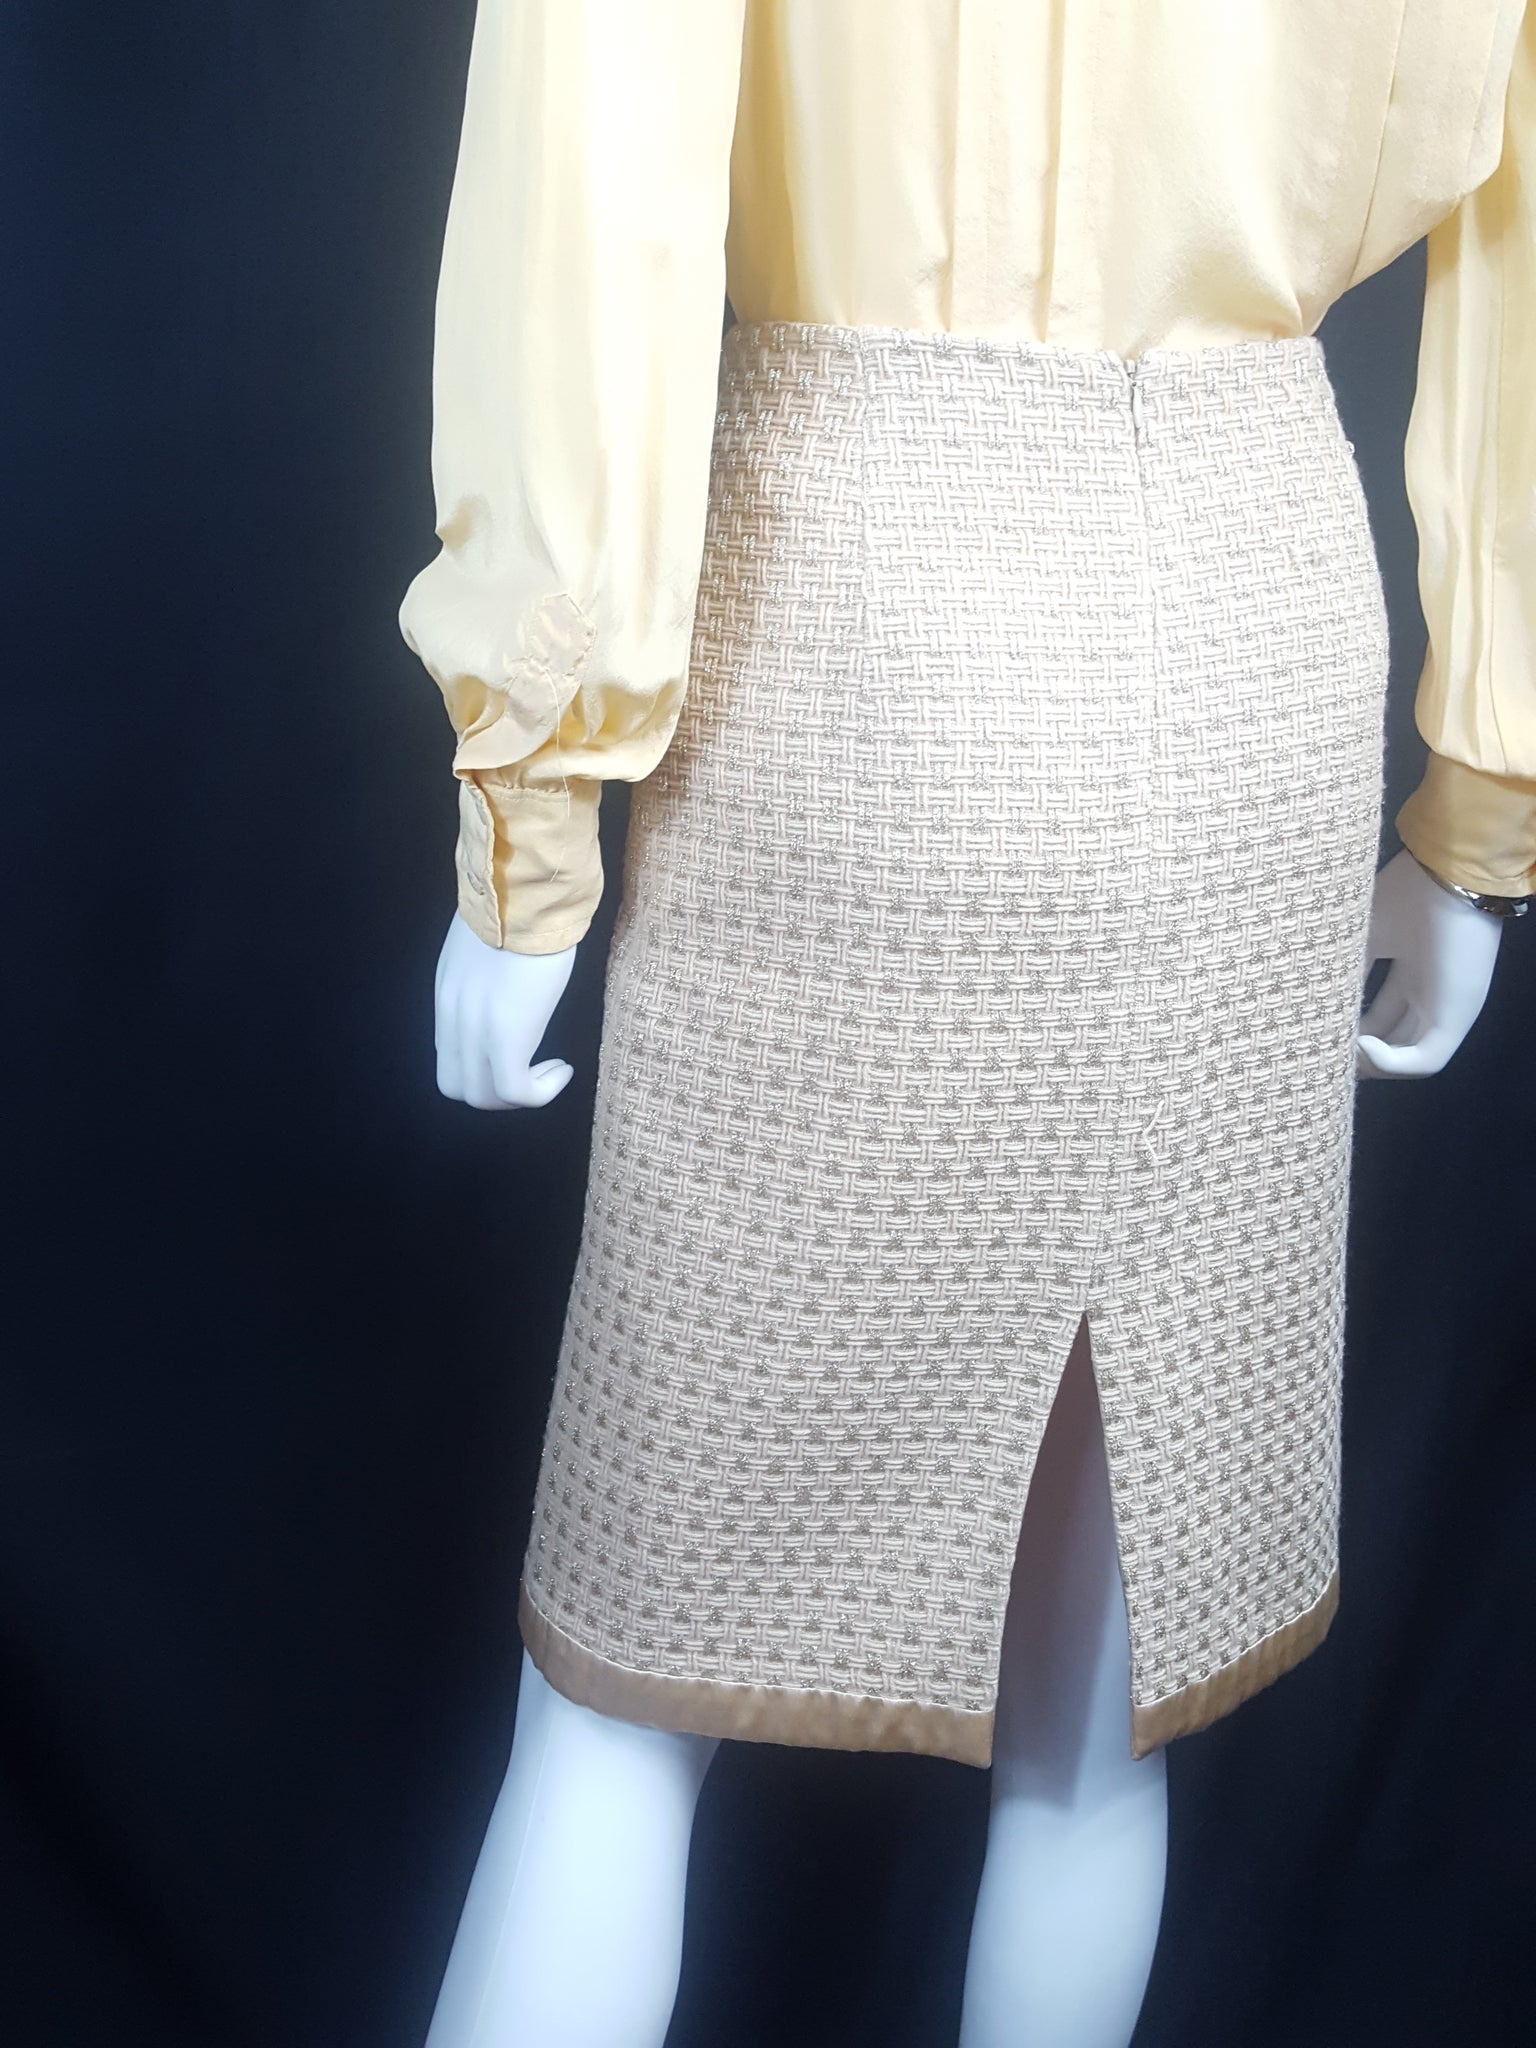 Milly Bergdorf Goodman Gold Metallic Tweed Skirt size 6